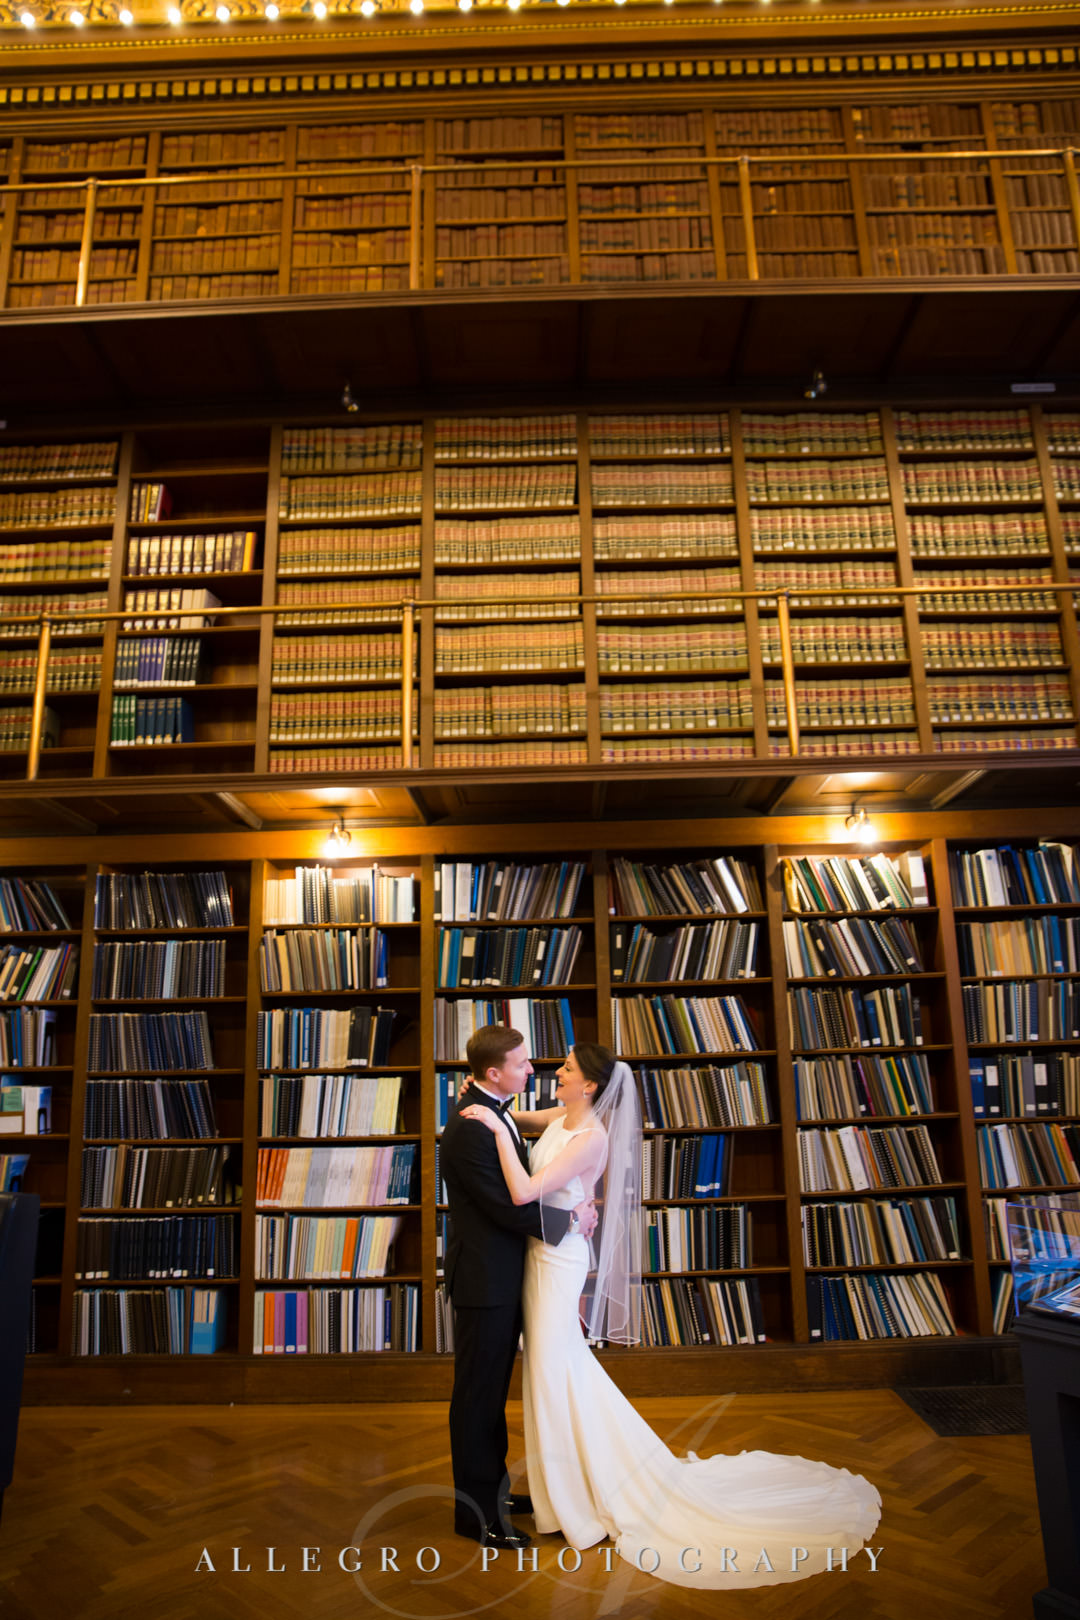 ri state house library- Bride and groom embrace in library stacks- rhode island state house